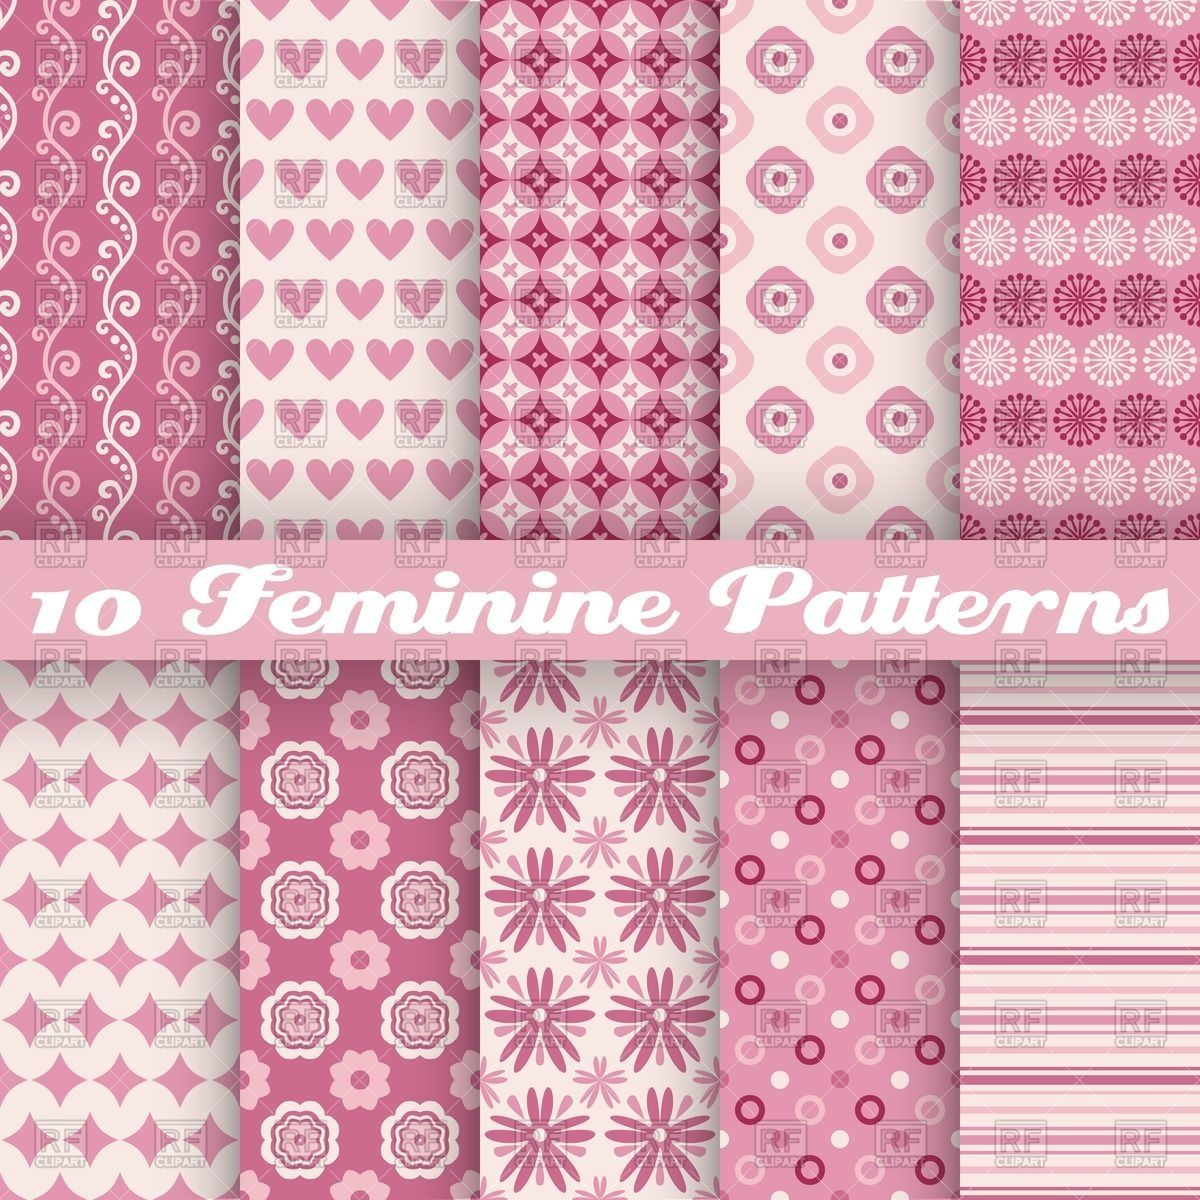 Seamless pink patterns with simple elements heart flower dot and